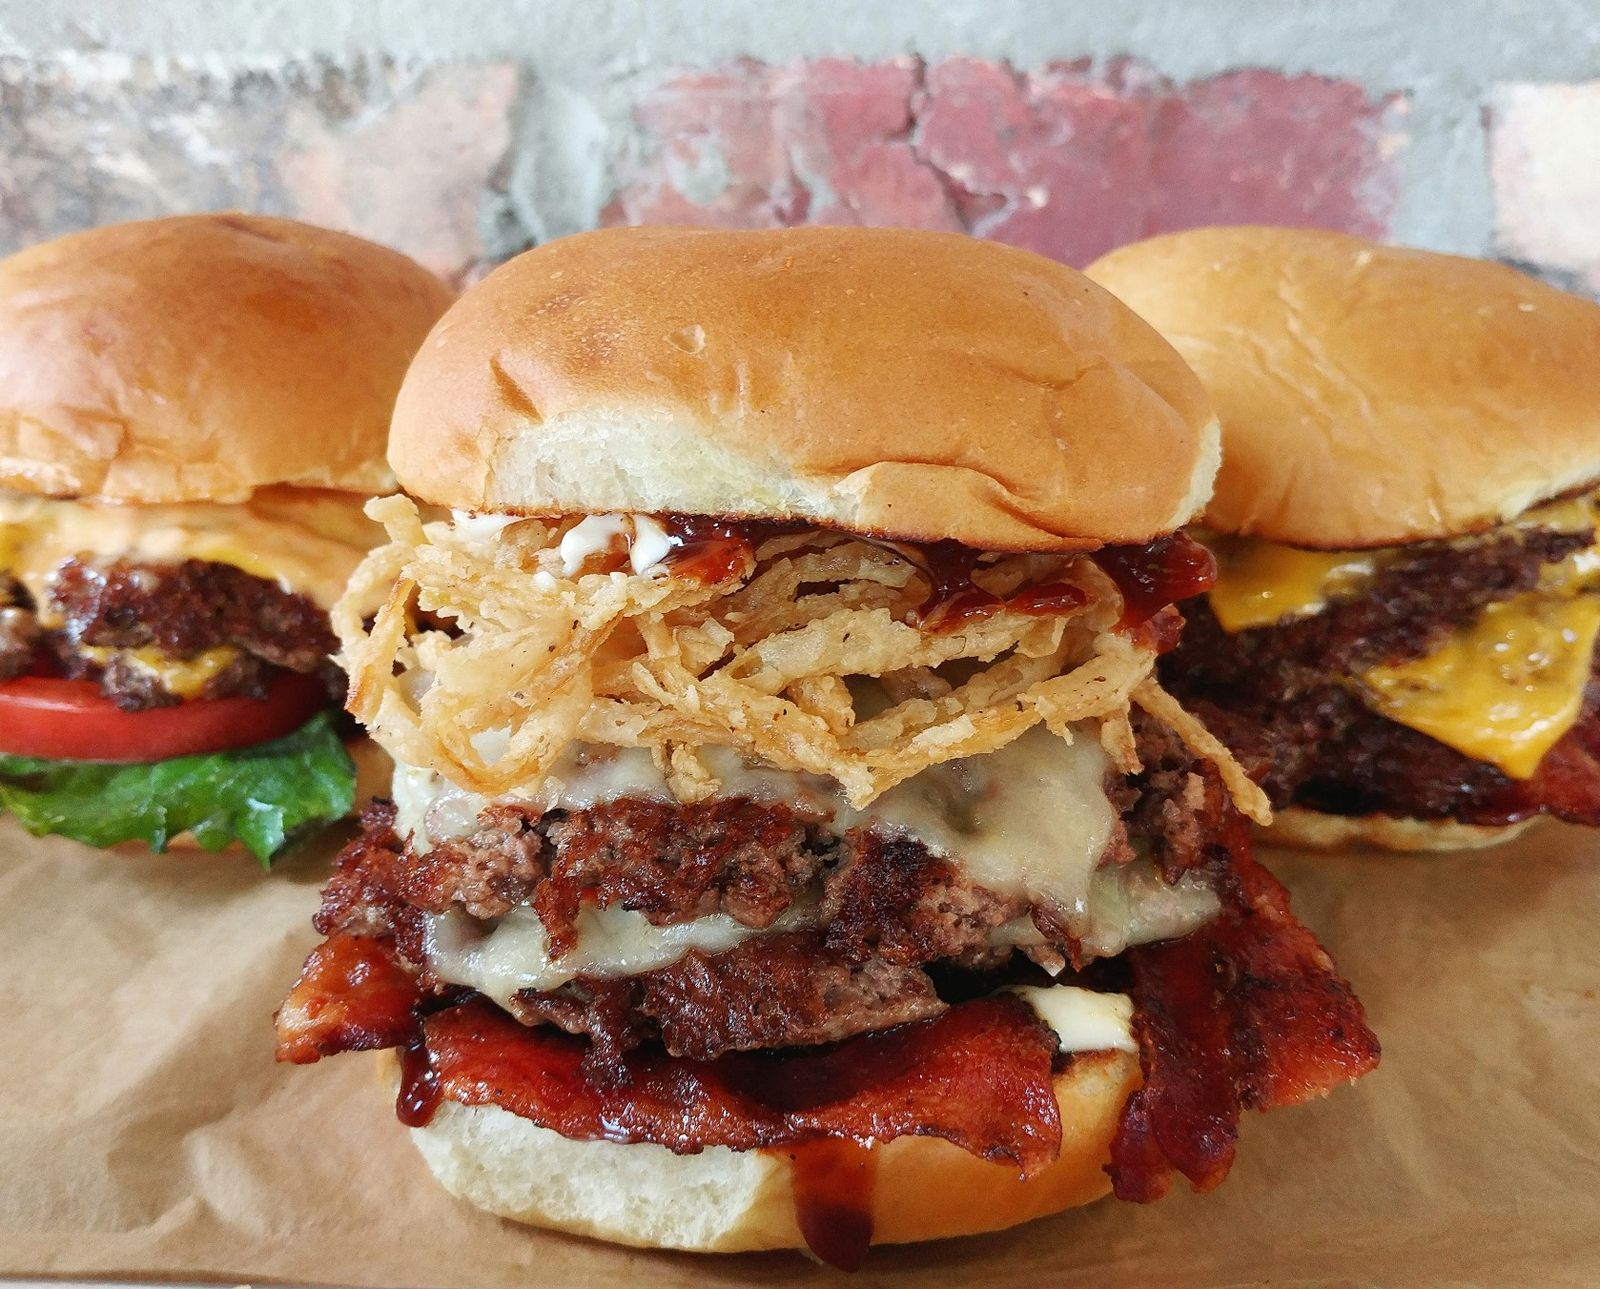 MOOYAH Burgers, Fries & Shakes to Drive Holiday Gift Card Sales with Gamification for Guests